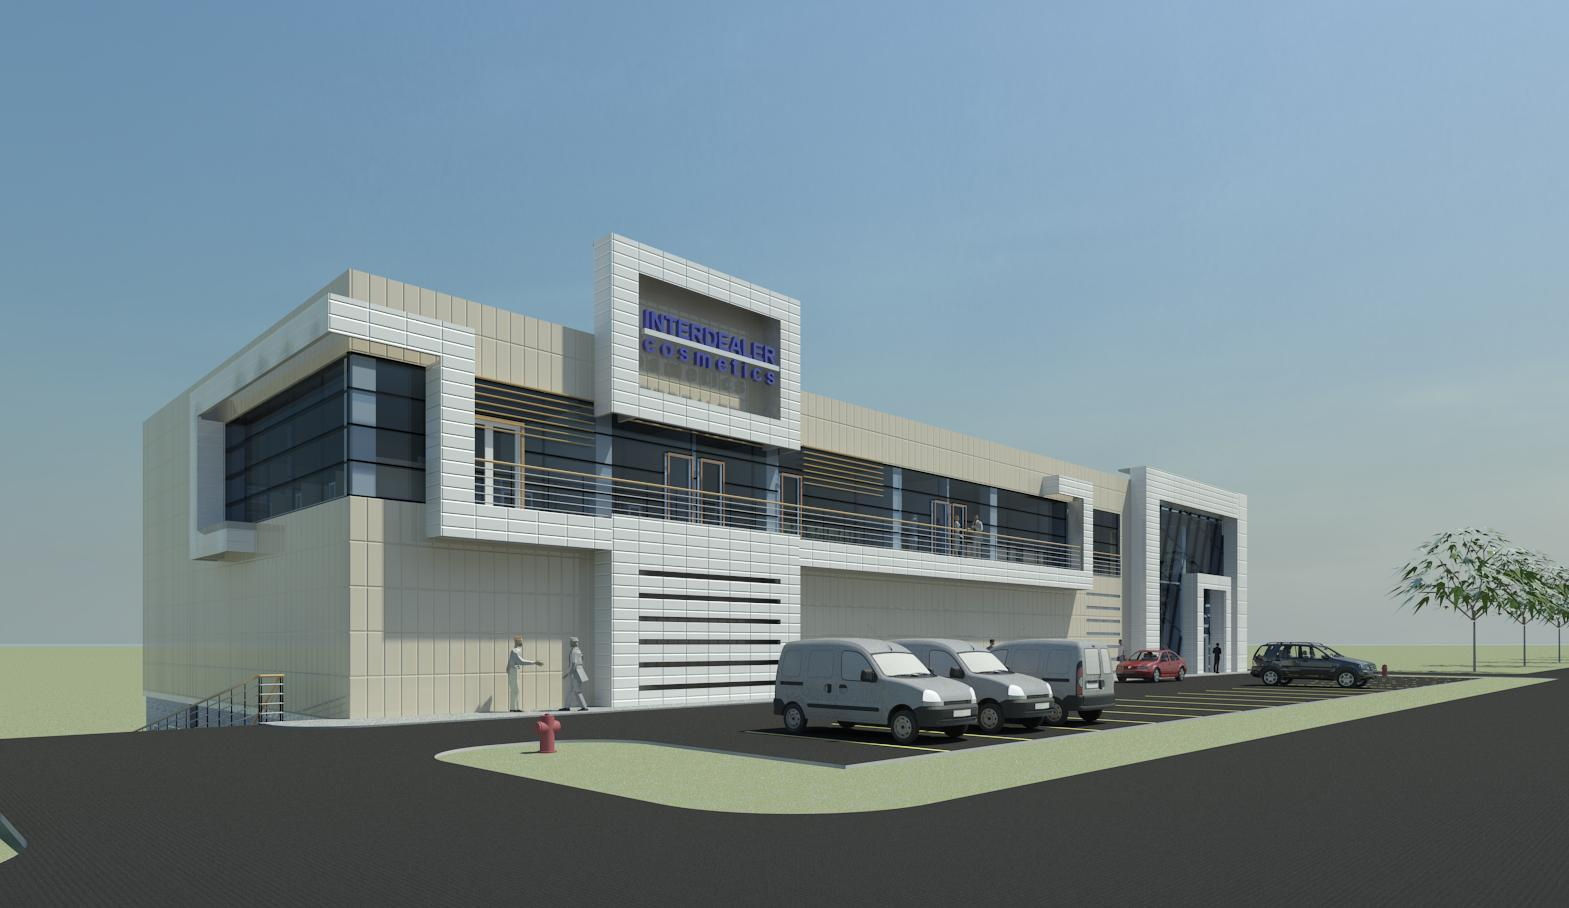 Commercial building bg1 by dheeraj mohan at for Building design